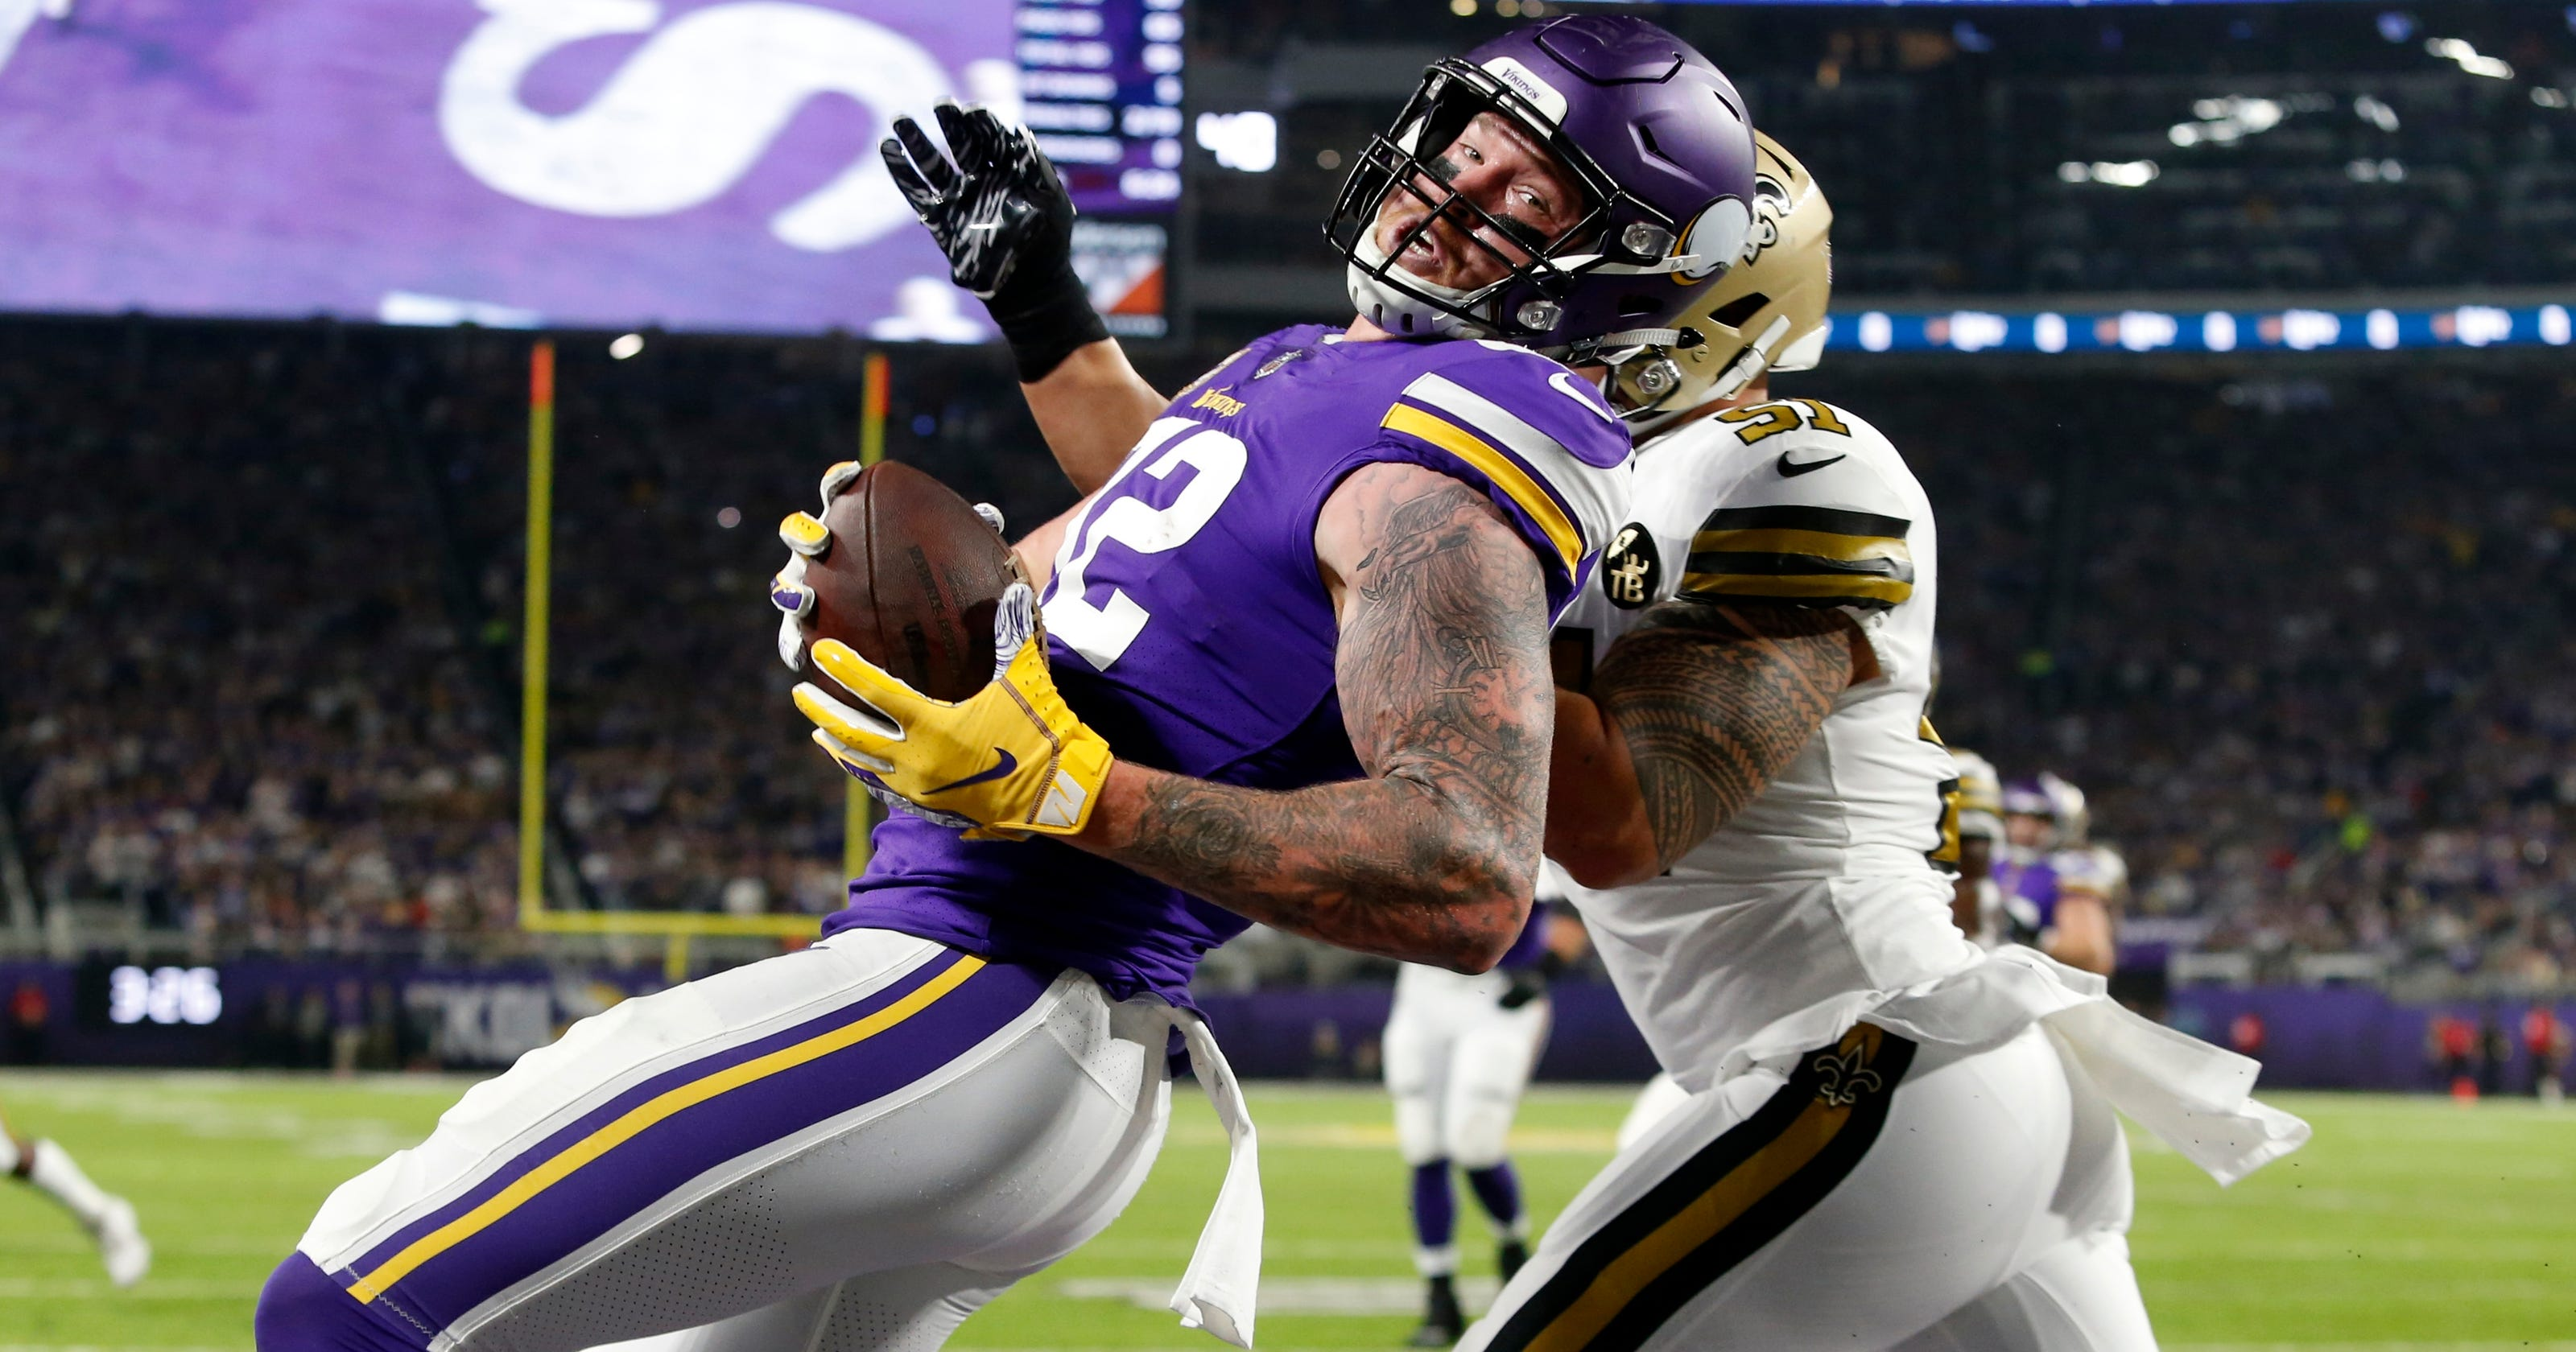 official photos 420d3 ac786 On and off field, Kyle Rudolph keeps giving value to Vikings